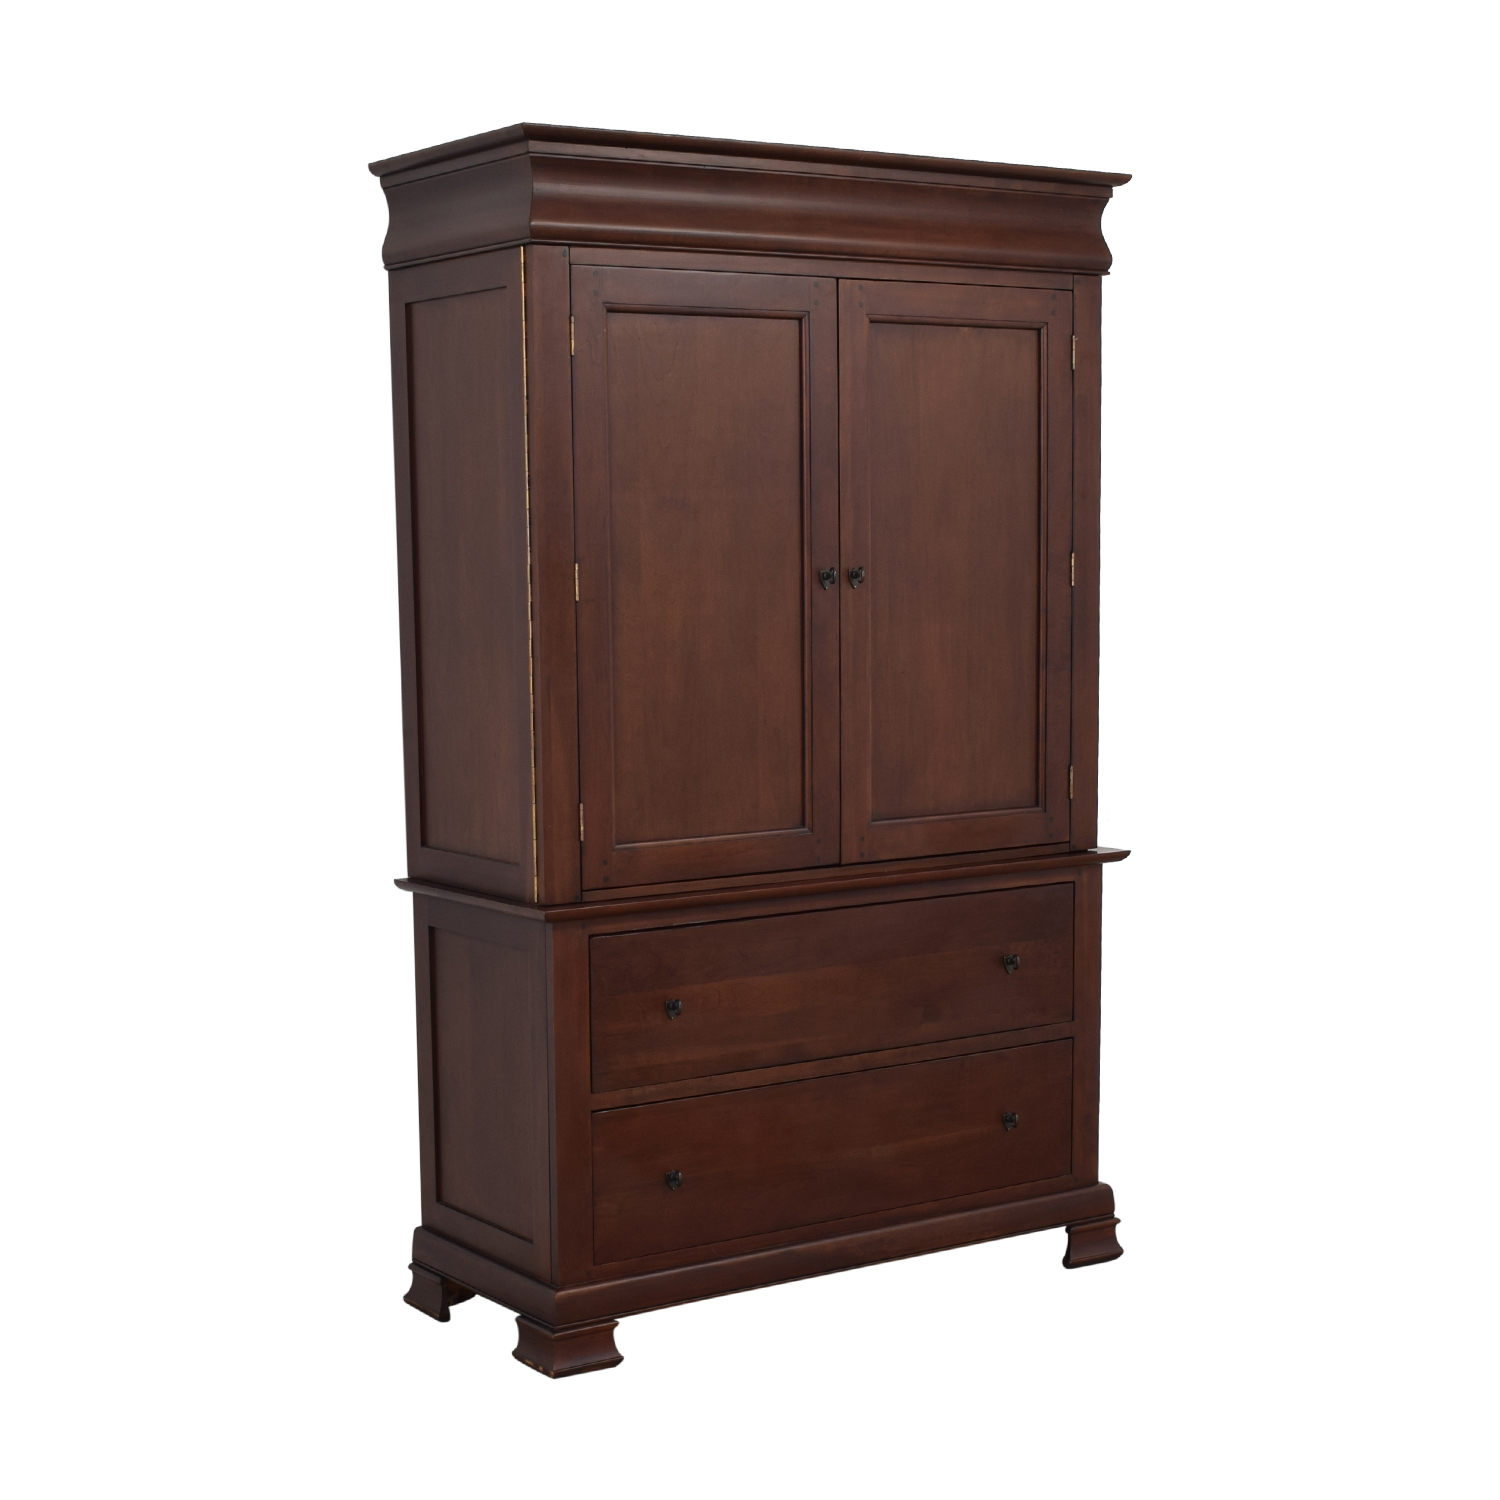 A-America Wood Furniture A-America Wood Furniture Wood Entertainment Armoire coupon